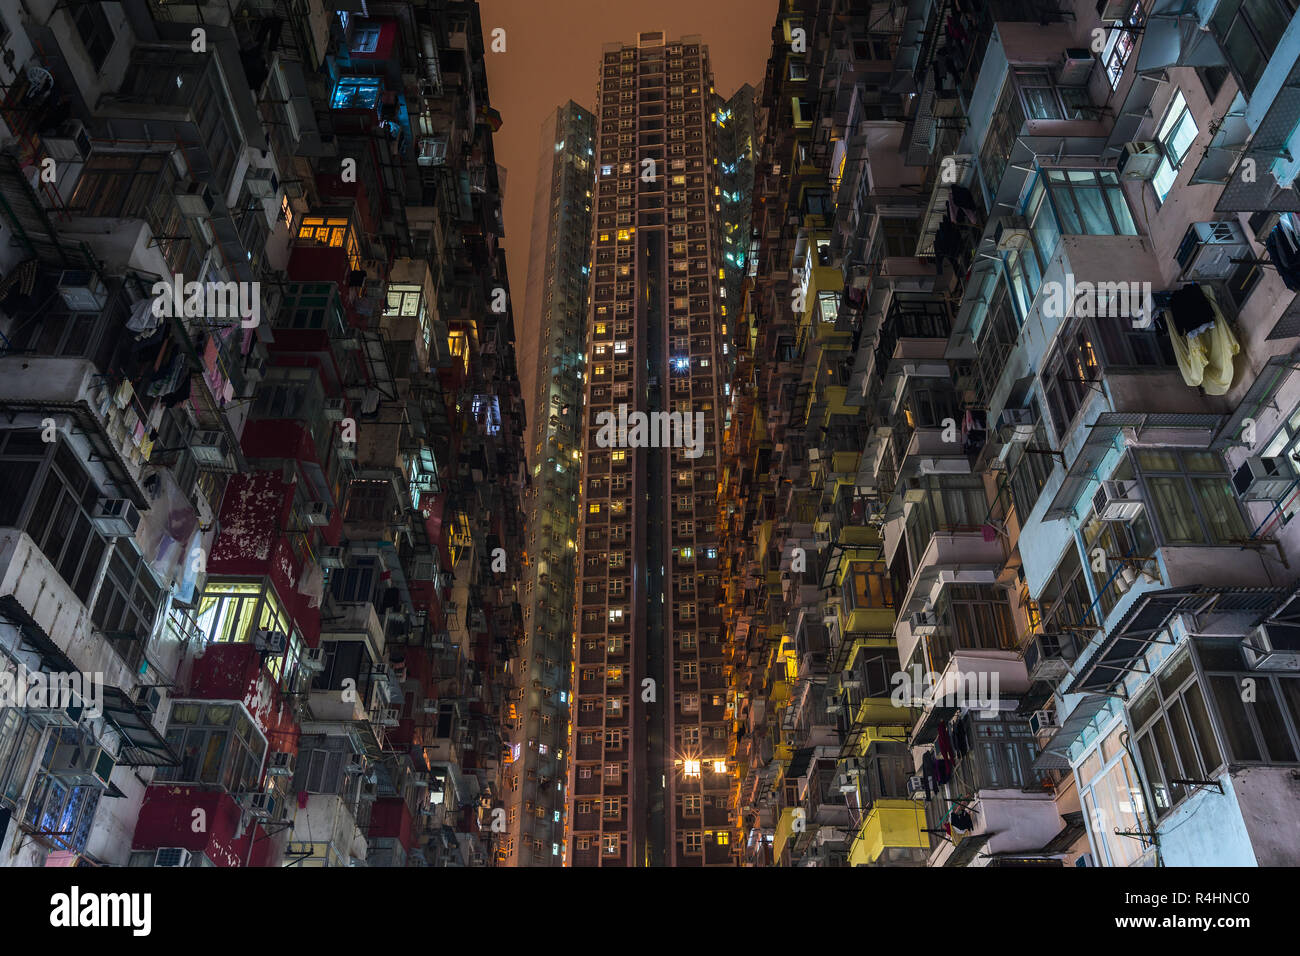 Night view of Montane Mansion or Yick Fat Building, know also as Concrete Jungle, has become famous as a set of Transformers movie - Stock Image